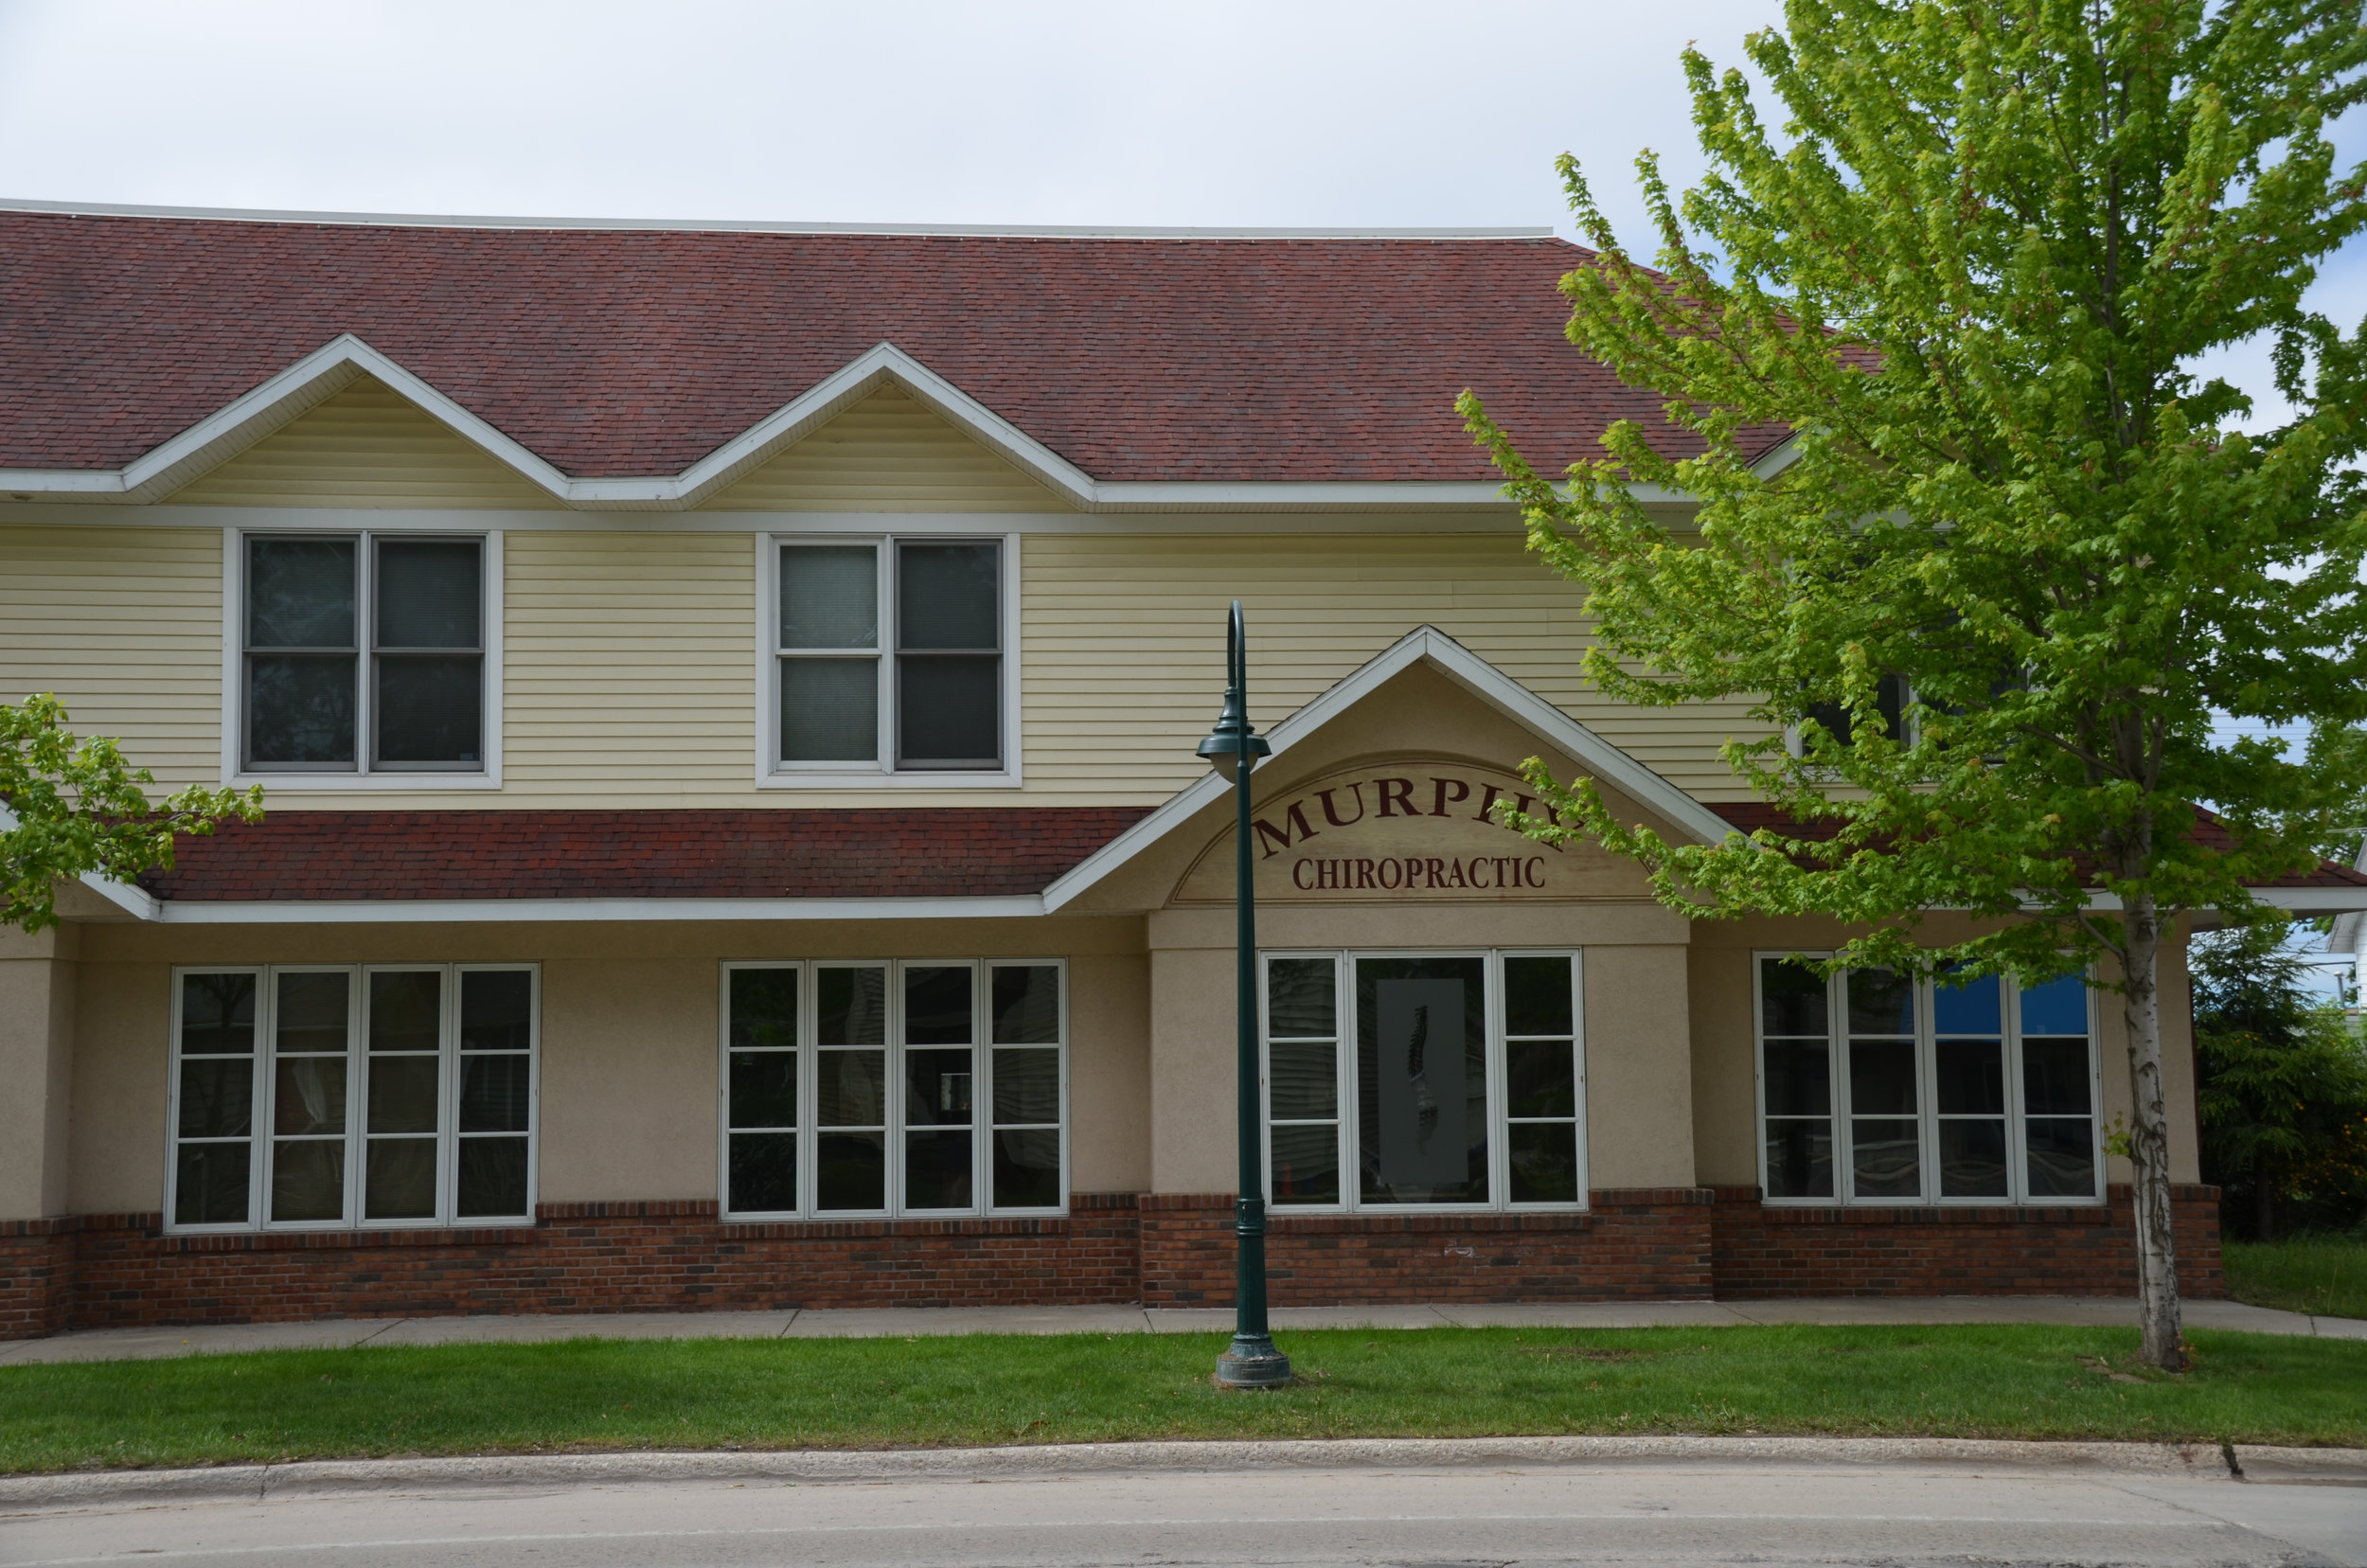 GT Manual Therapy is located in the lower floor of Murphy Chiropractic.